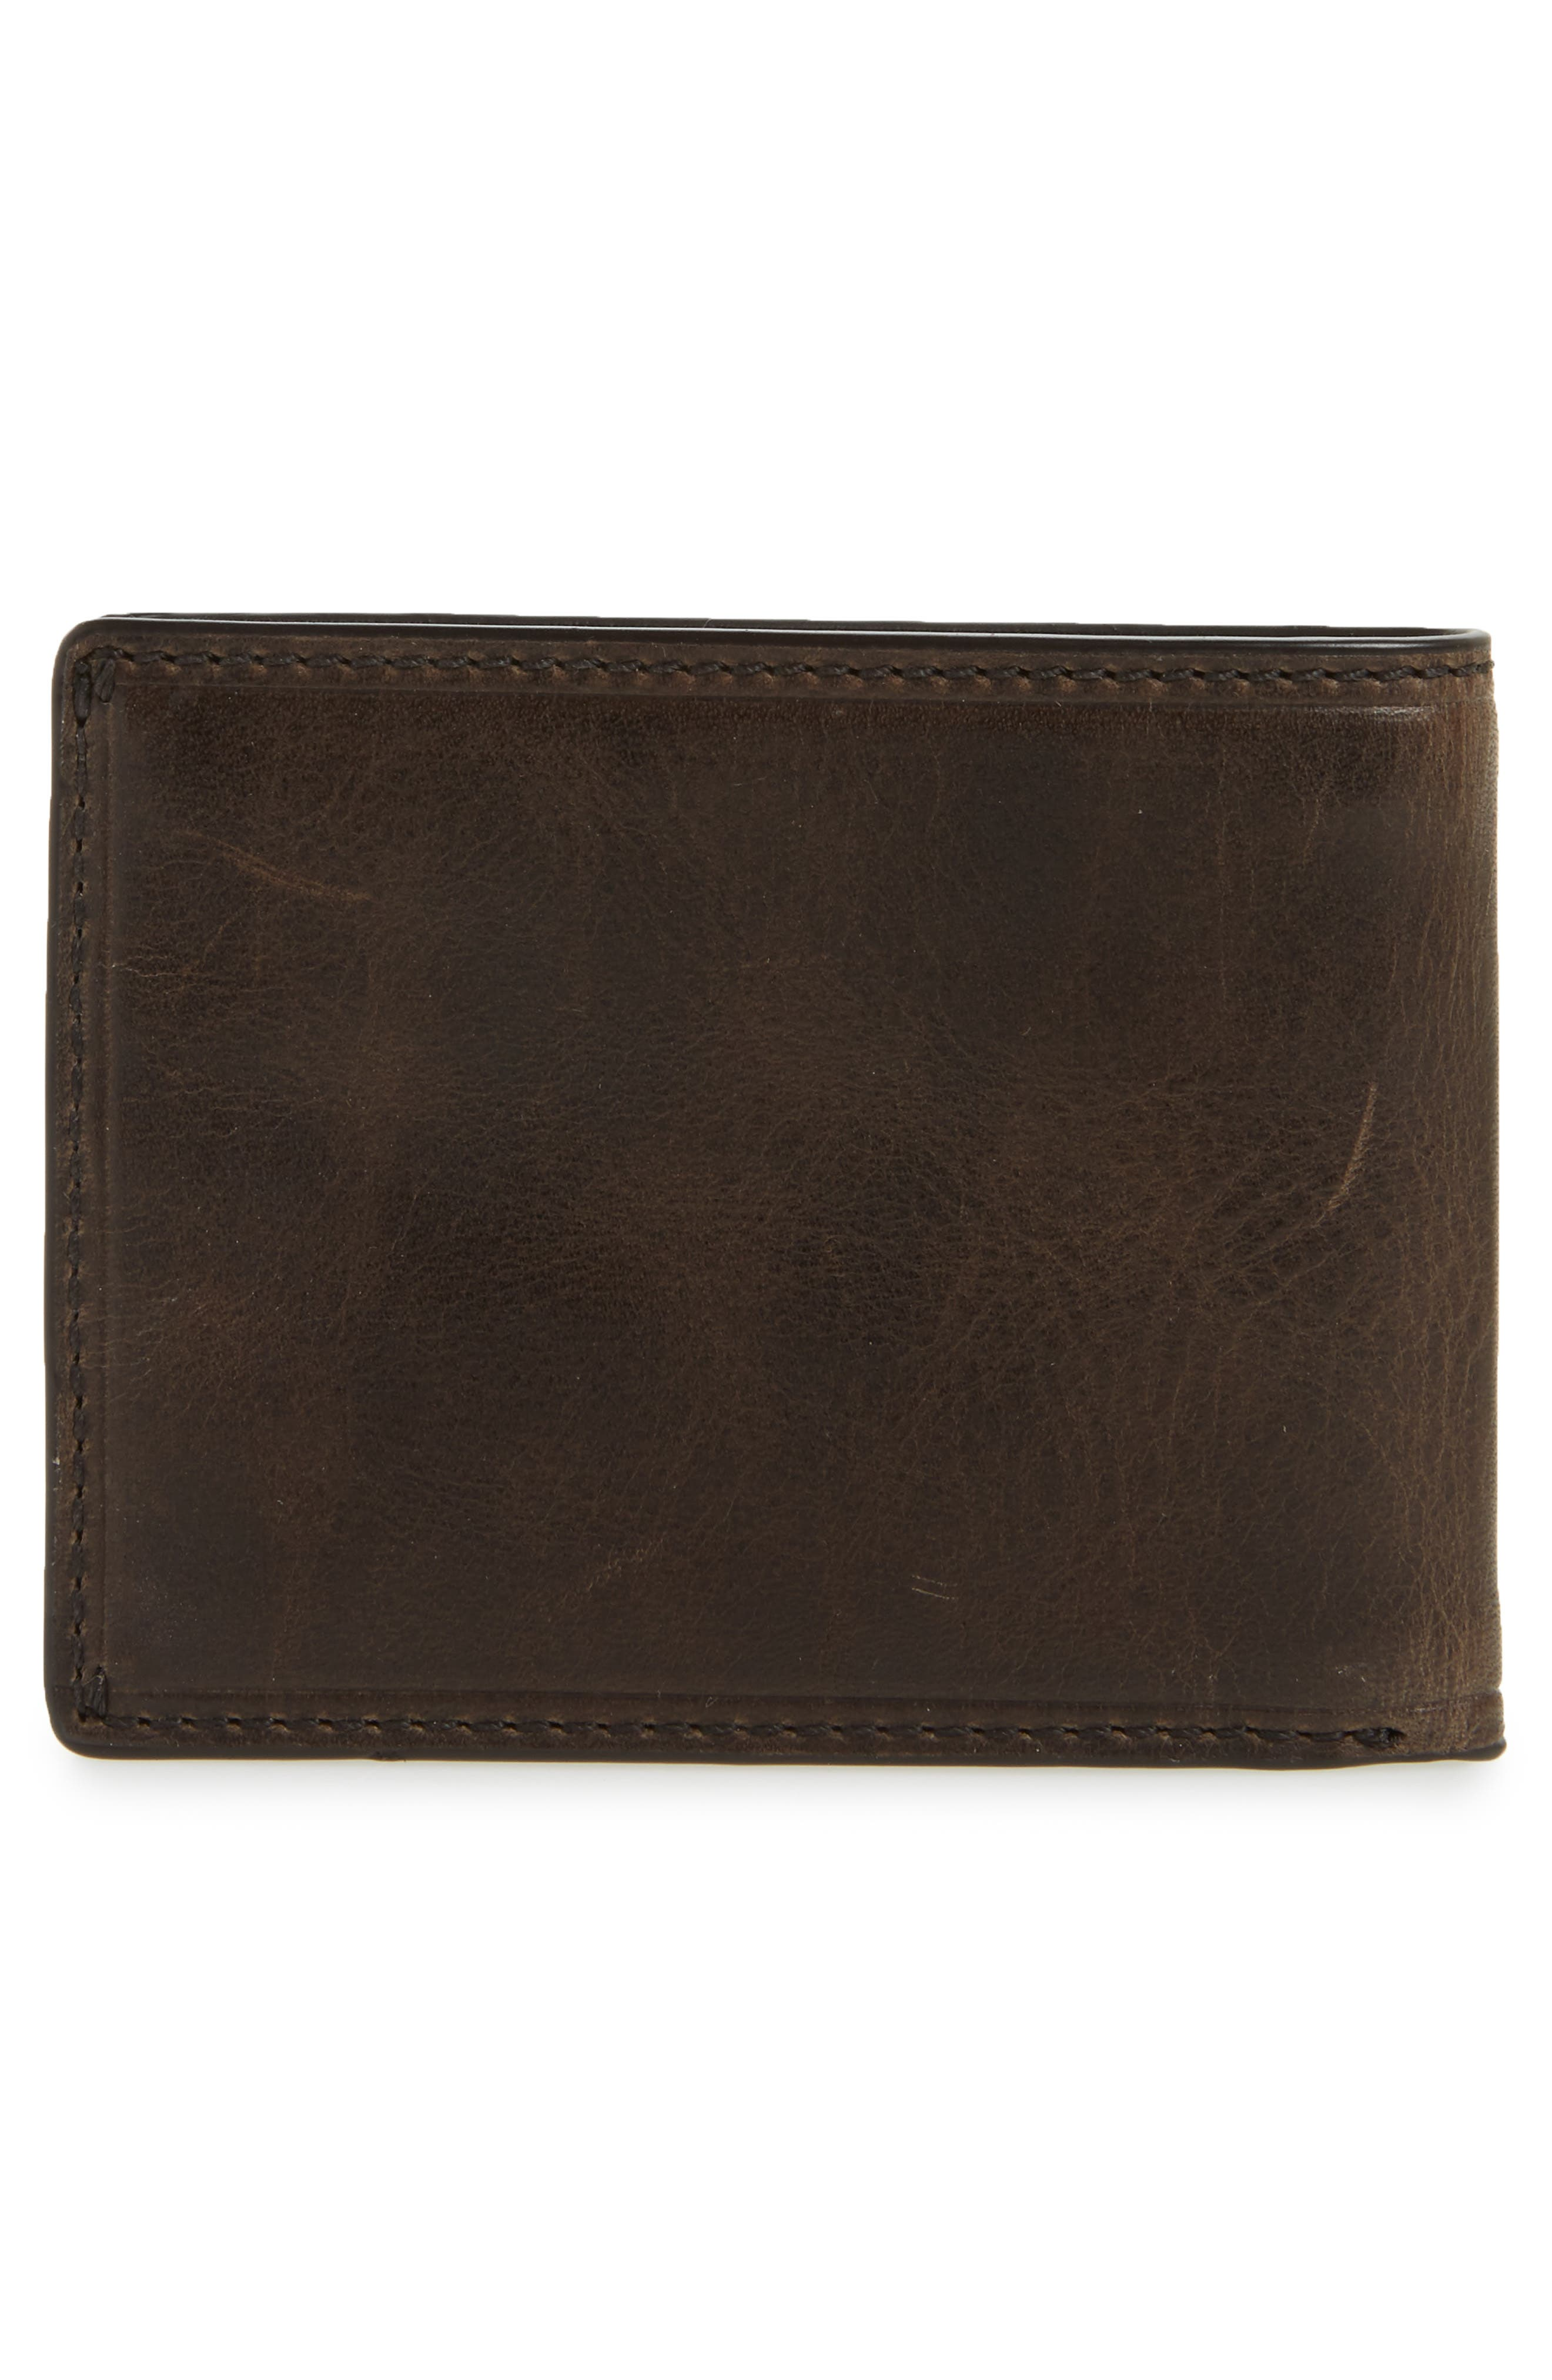 Logan Leather Wallet,                             Alternate thumbnail 3, color,                             SLATE